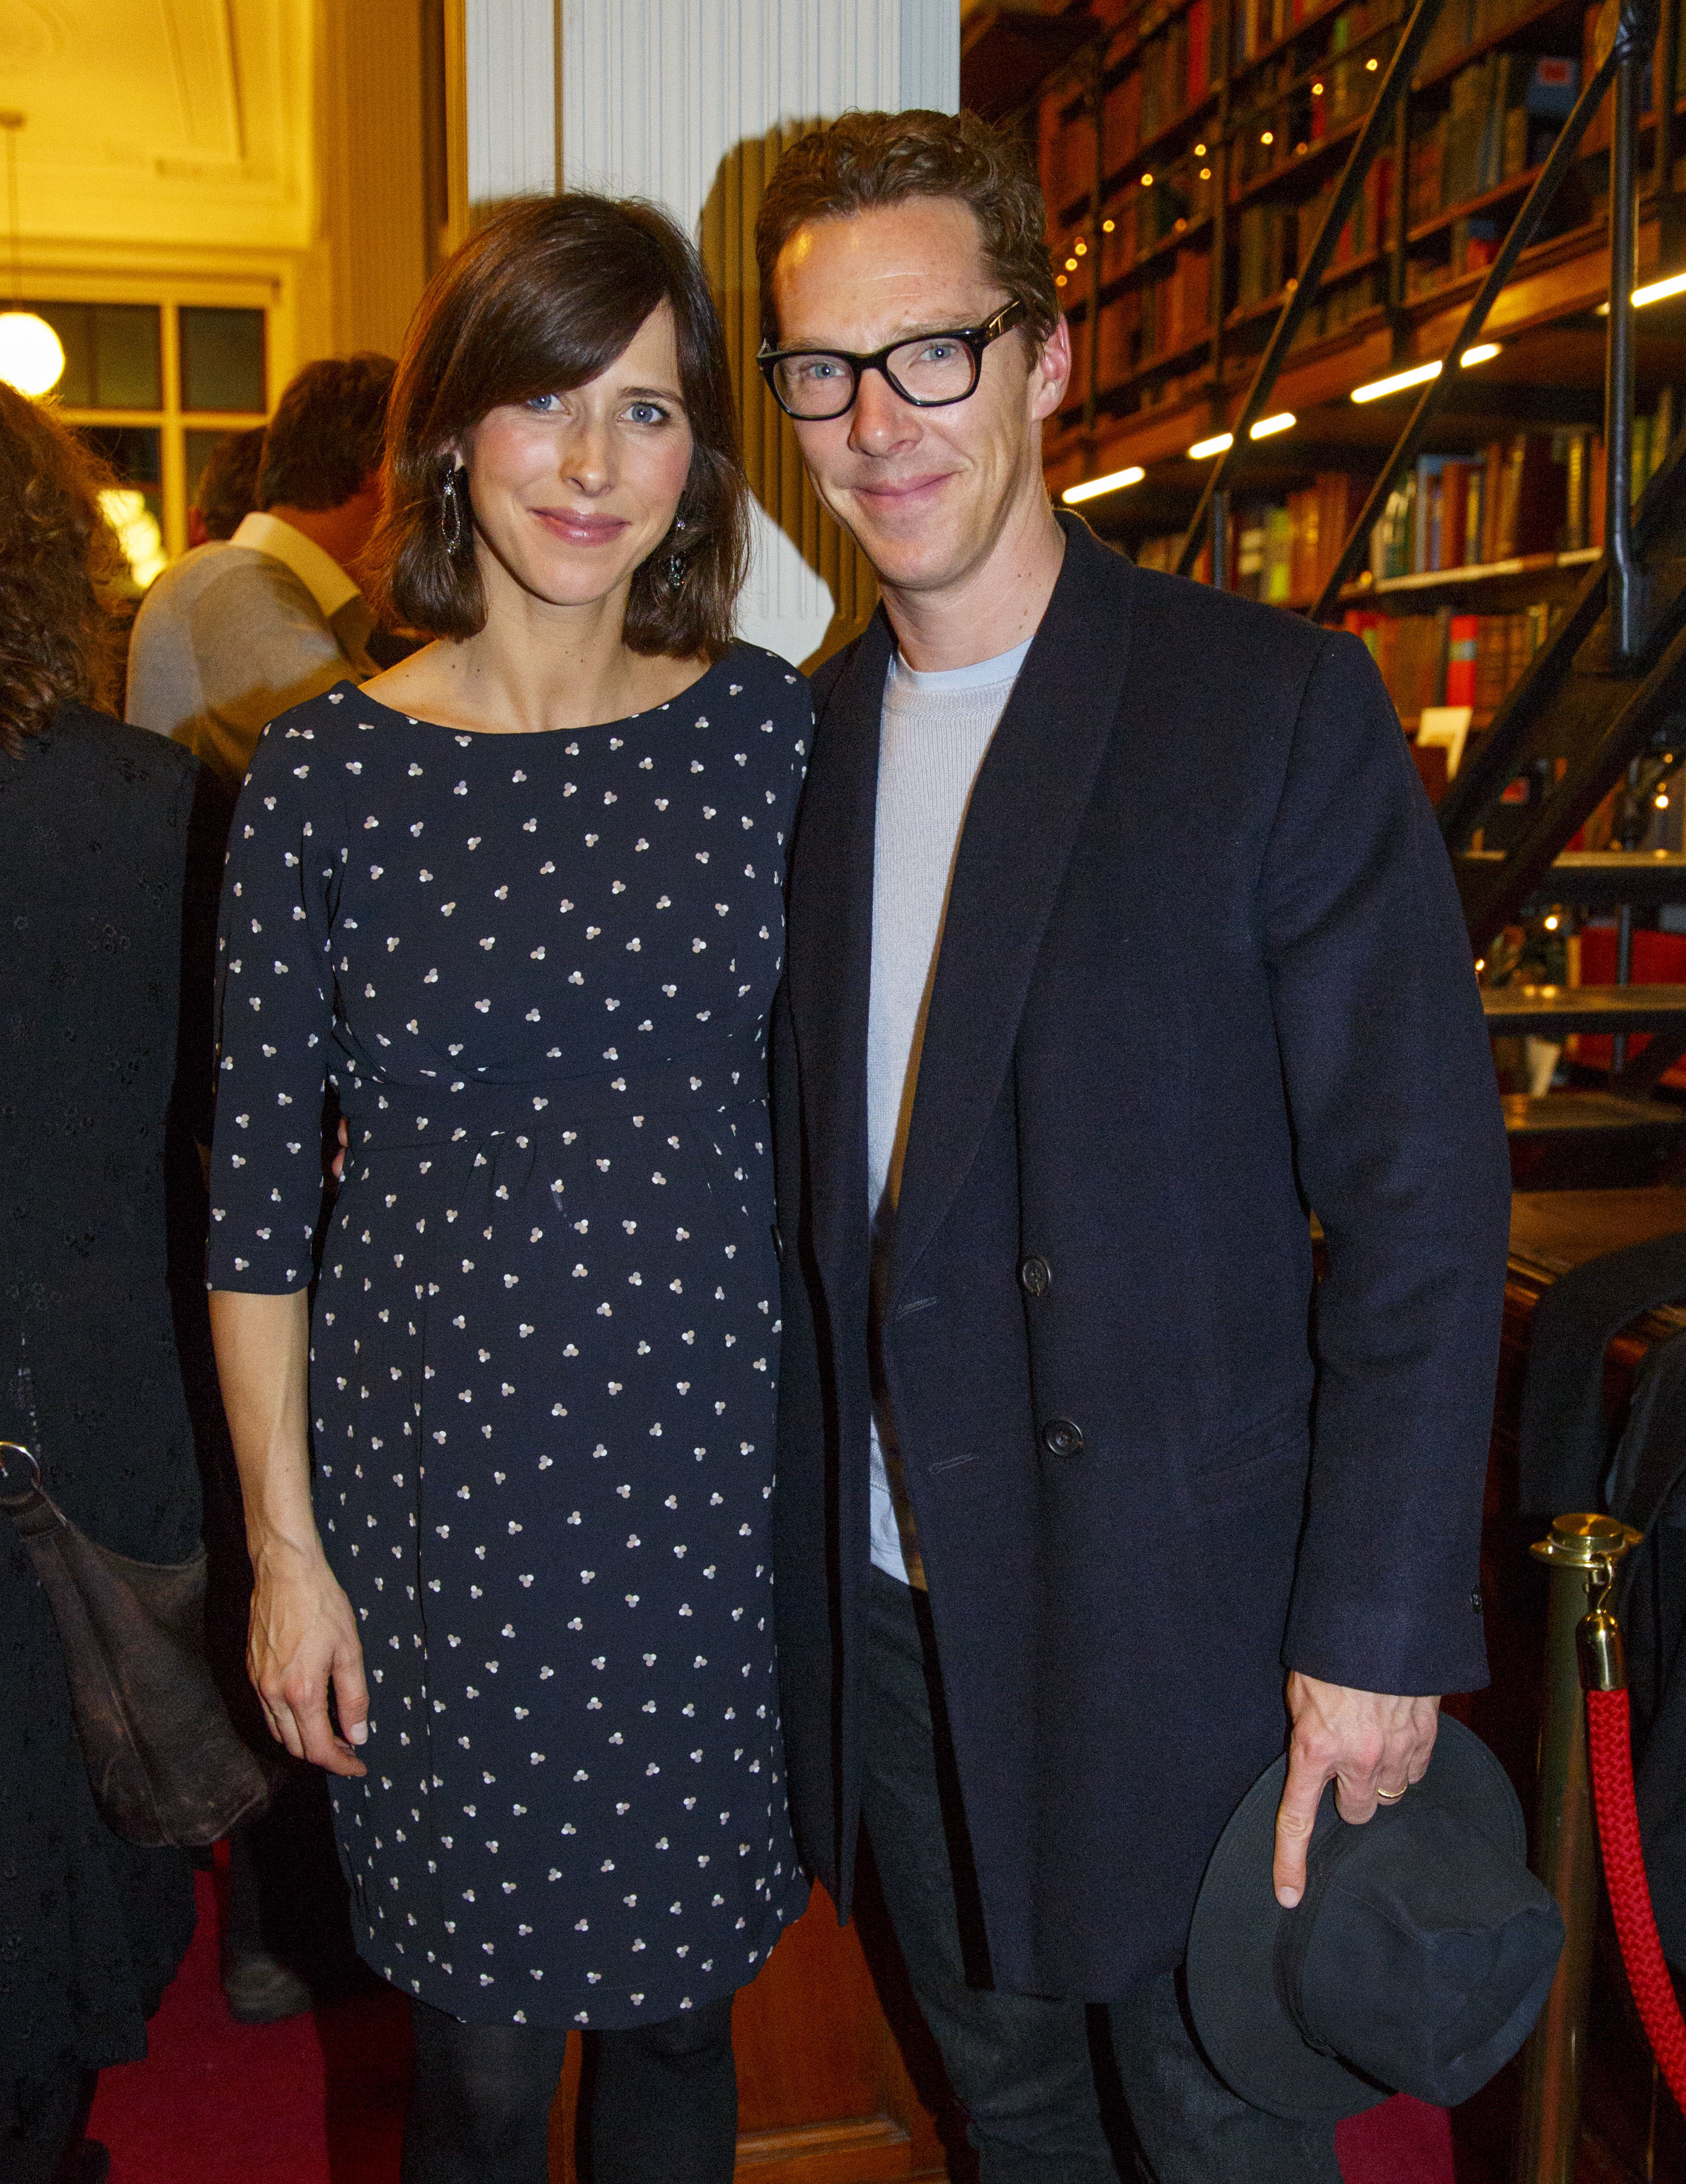 Sophie Hunter and Benedict Cumberbatch at The London Library Christmas Party in London, on Dec. 1, 2016.